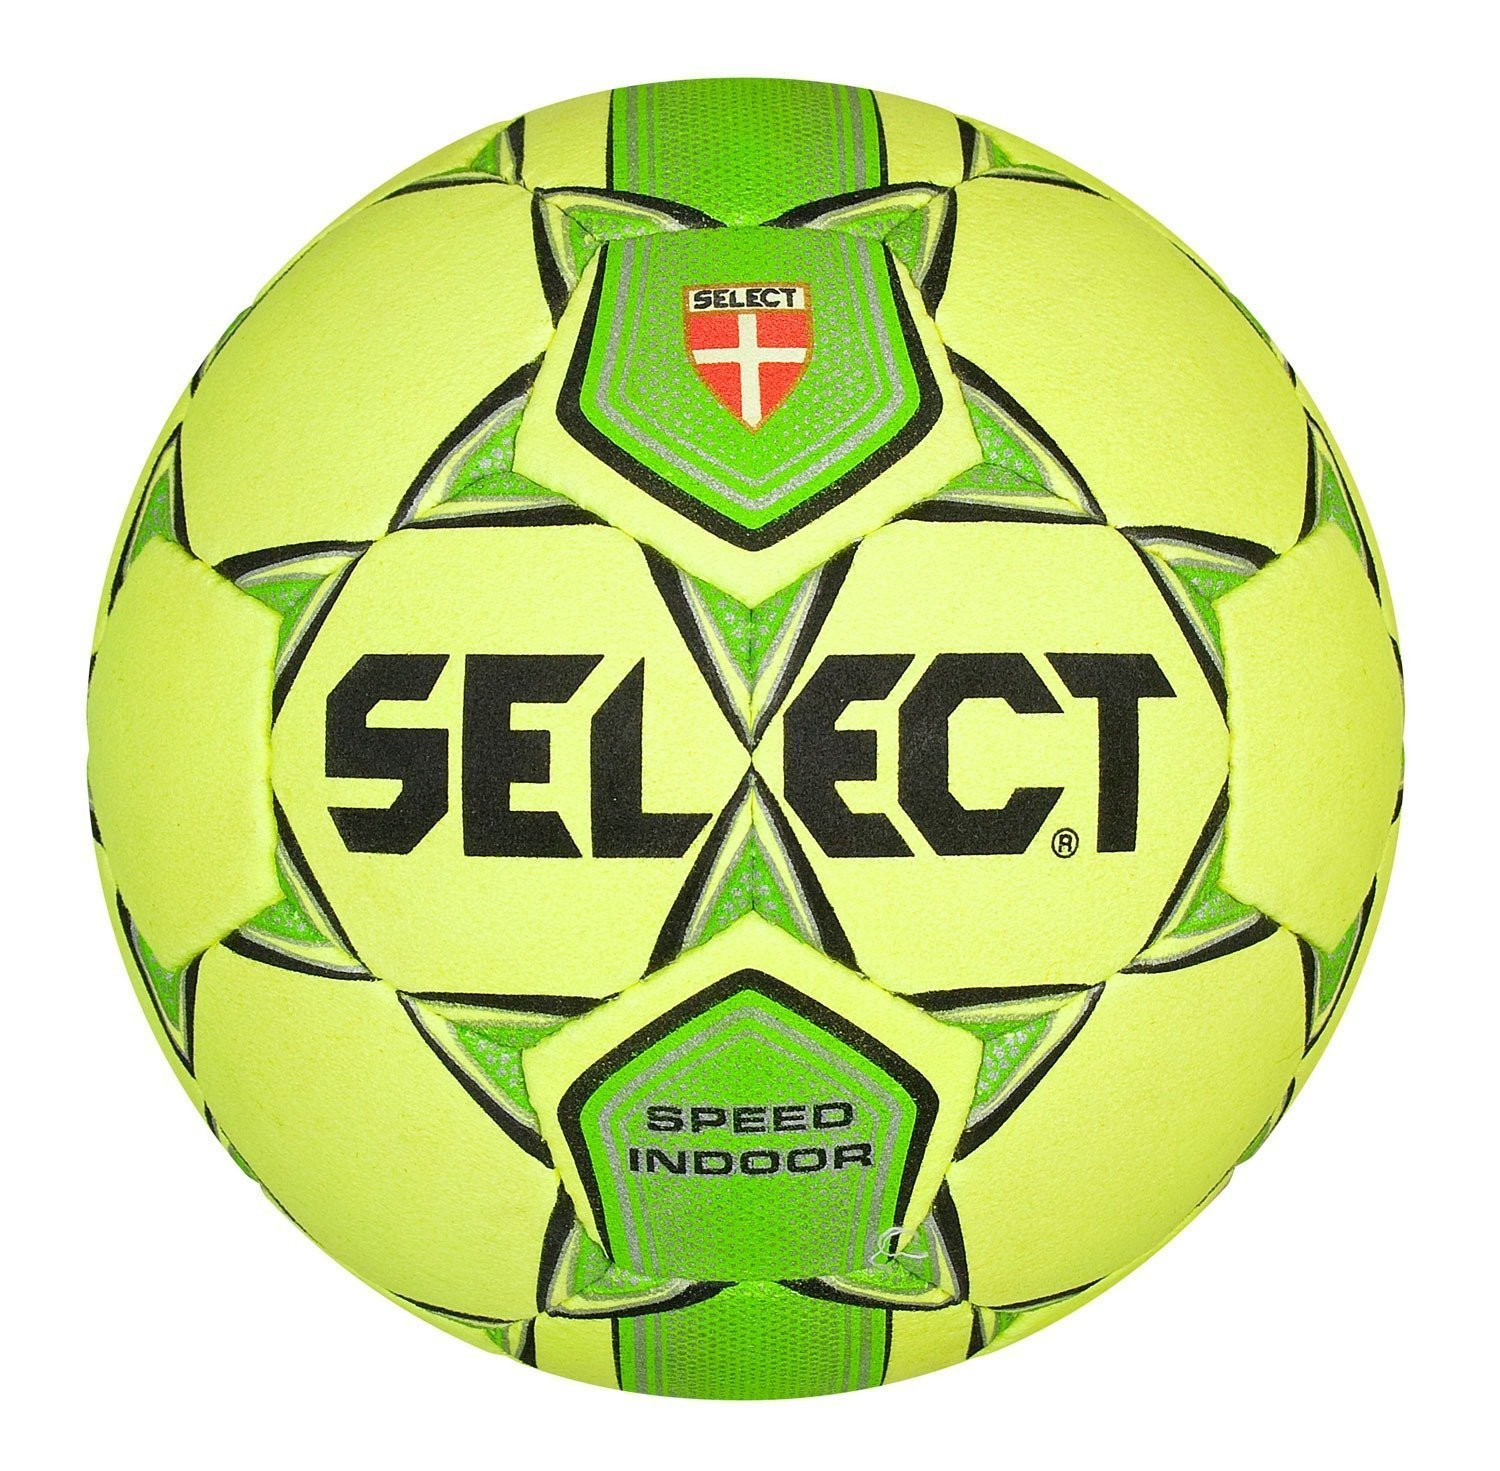 Select – Select speed indoor fodbold på billigsport24